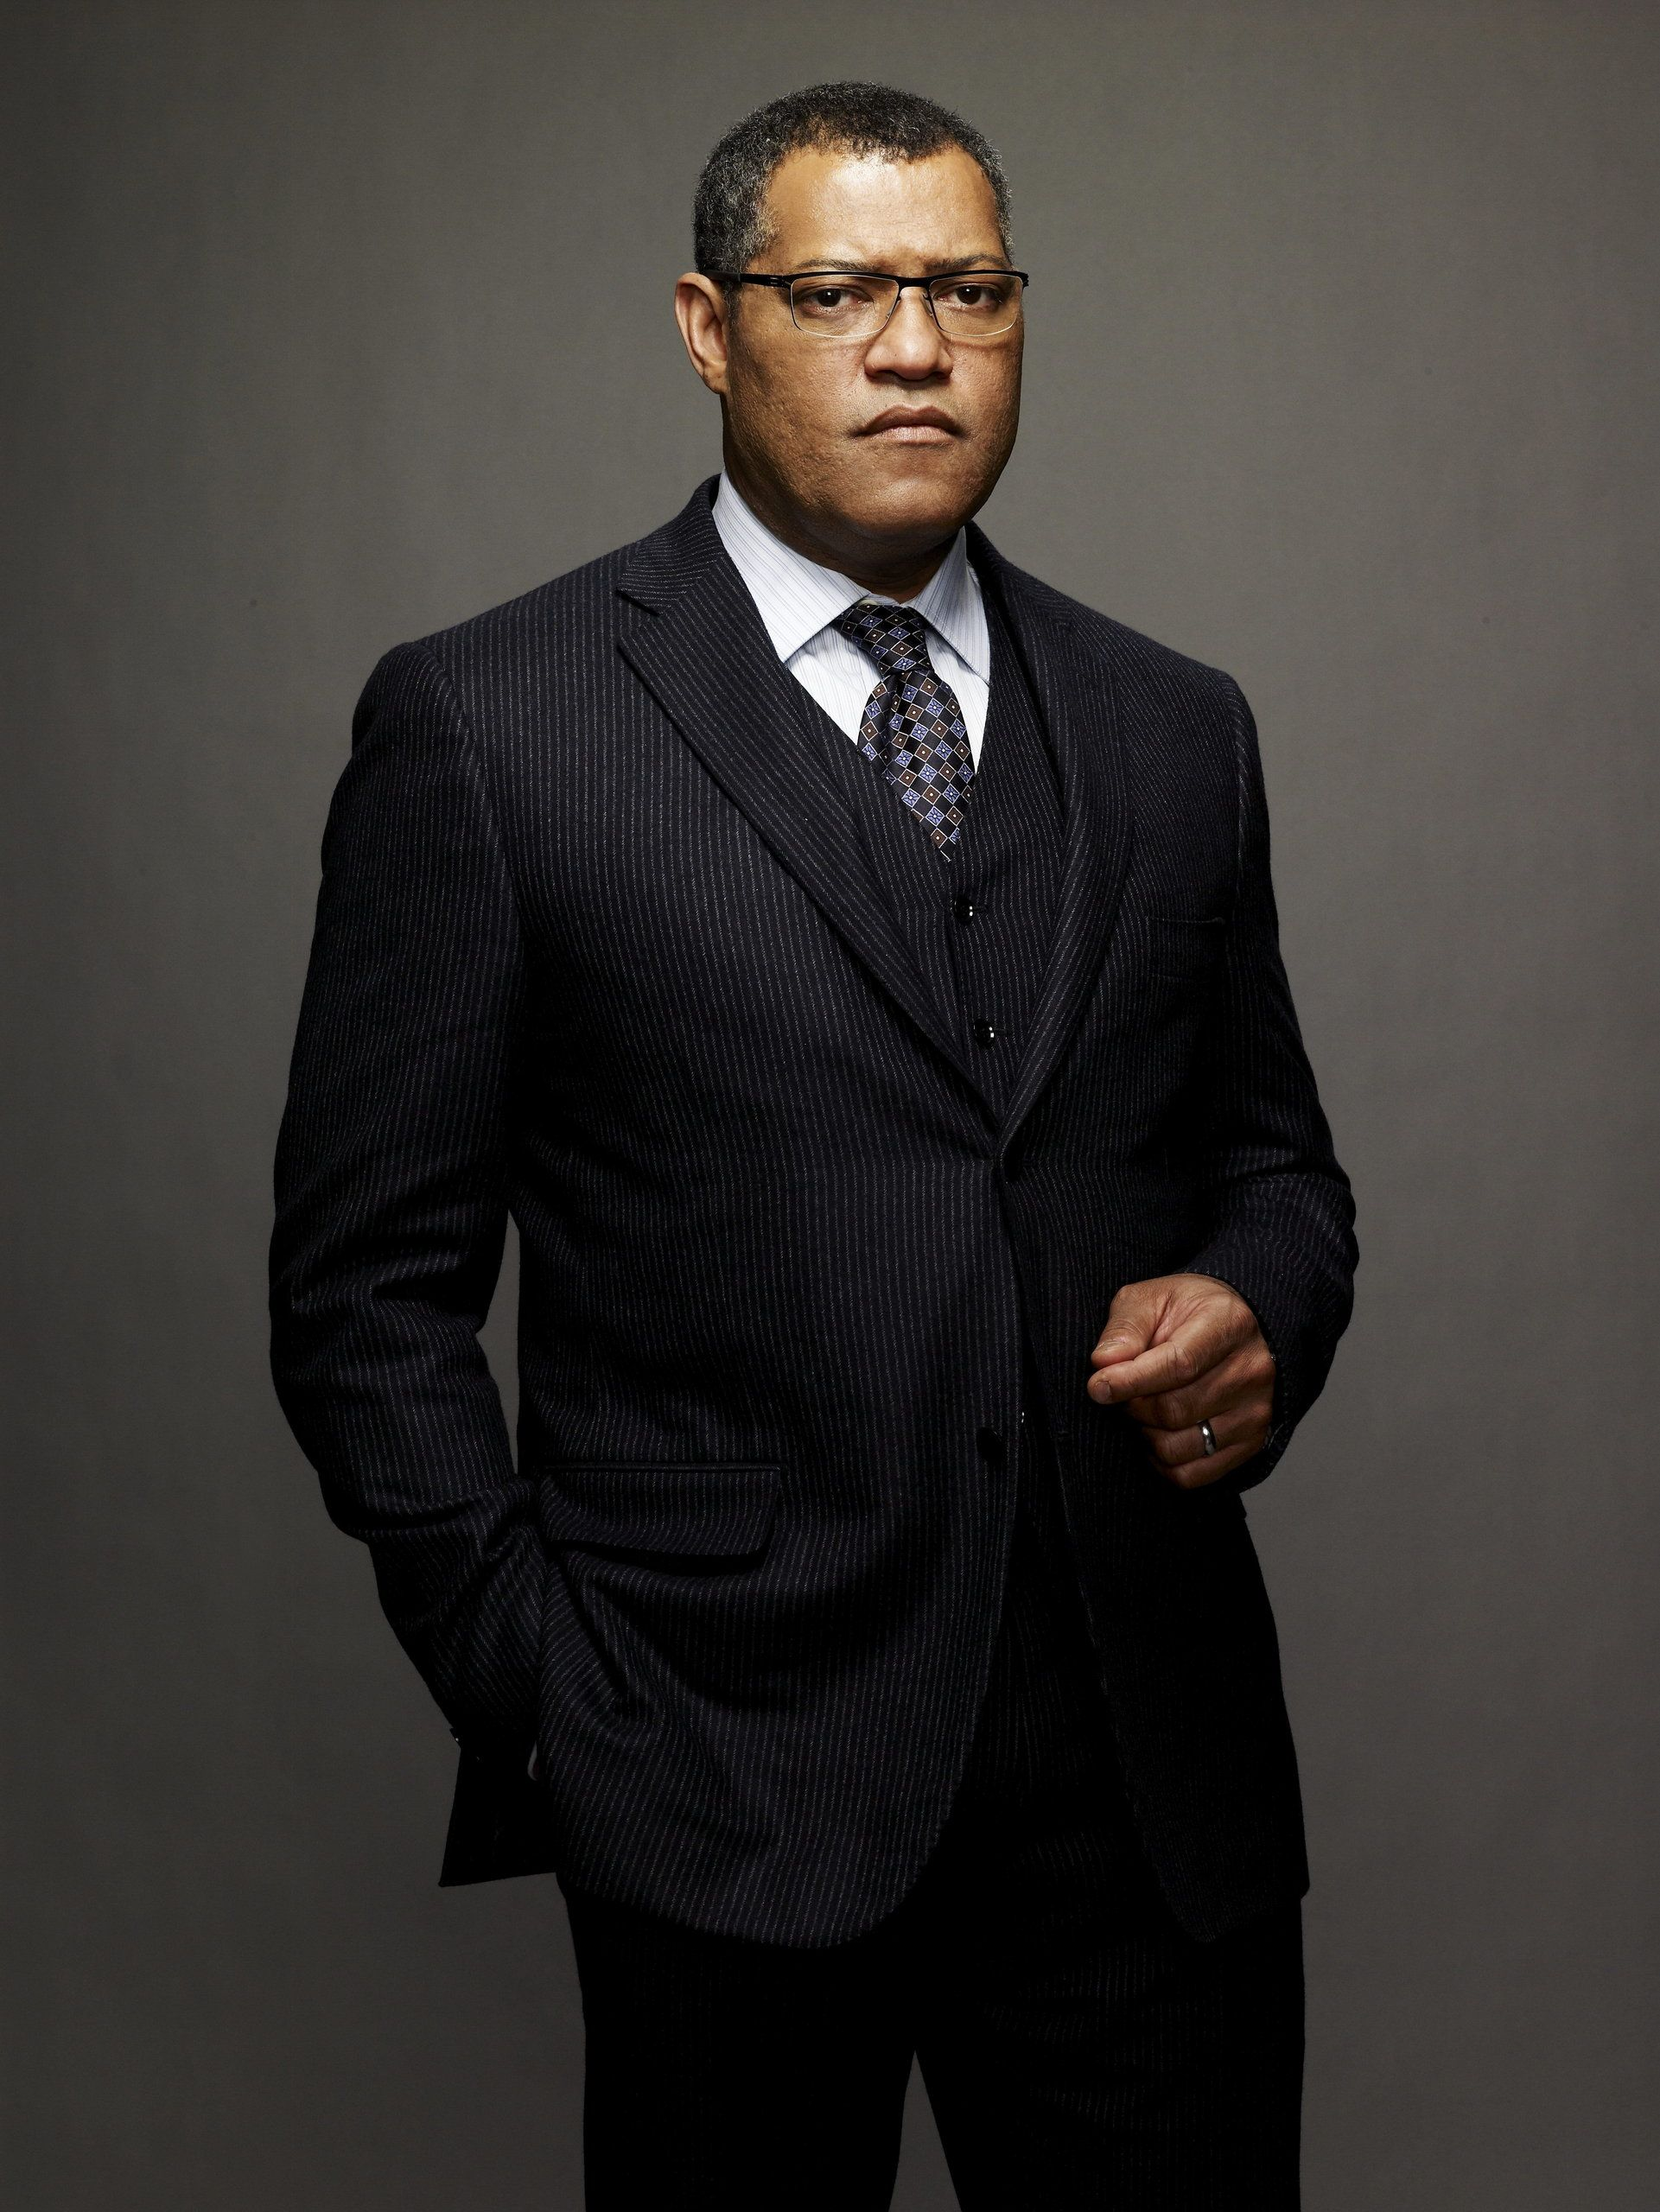 laurence fishburne says marvel